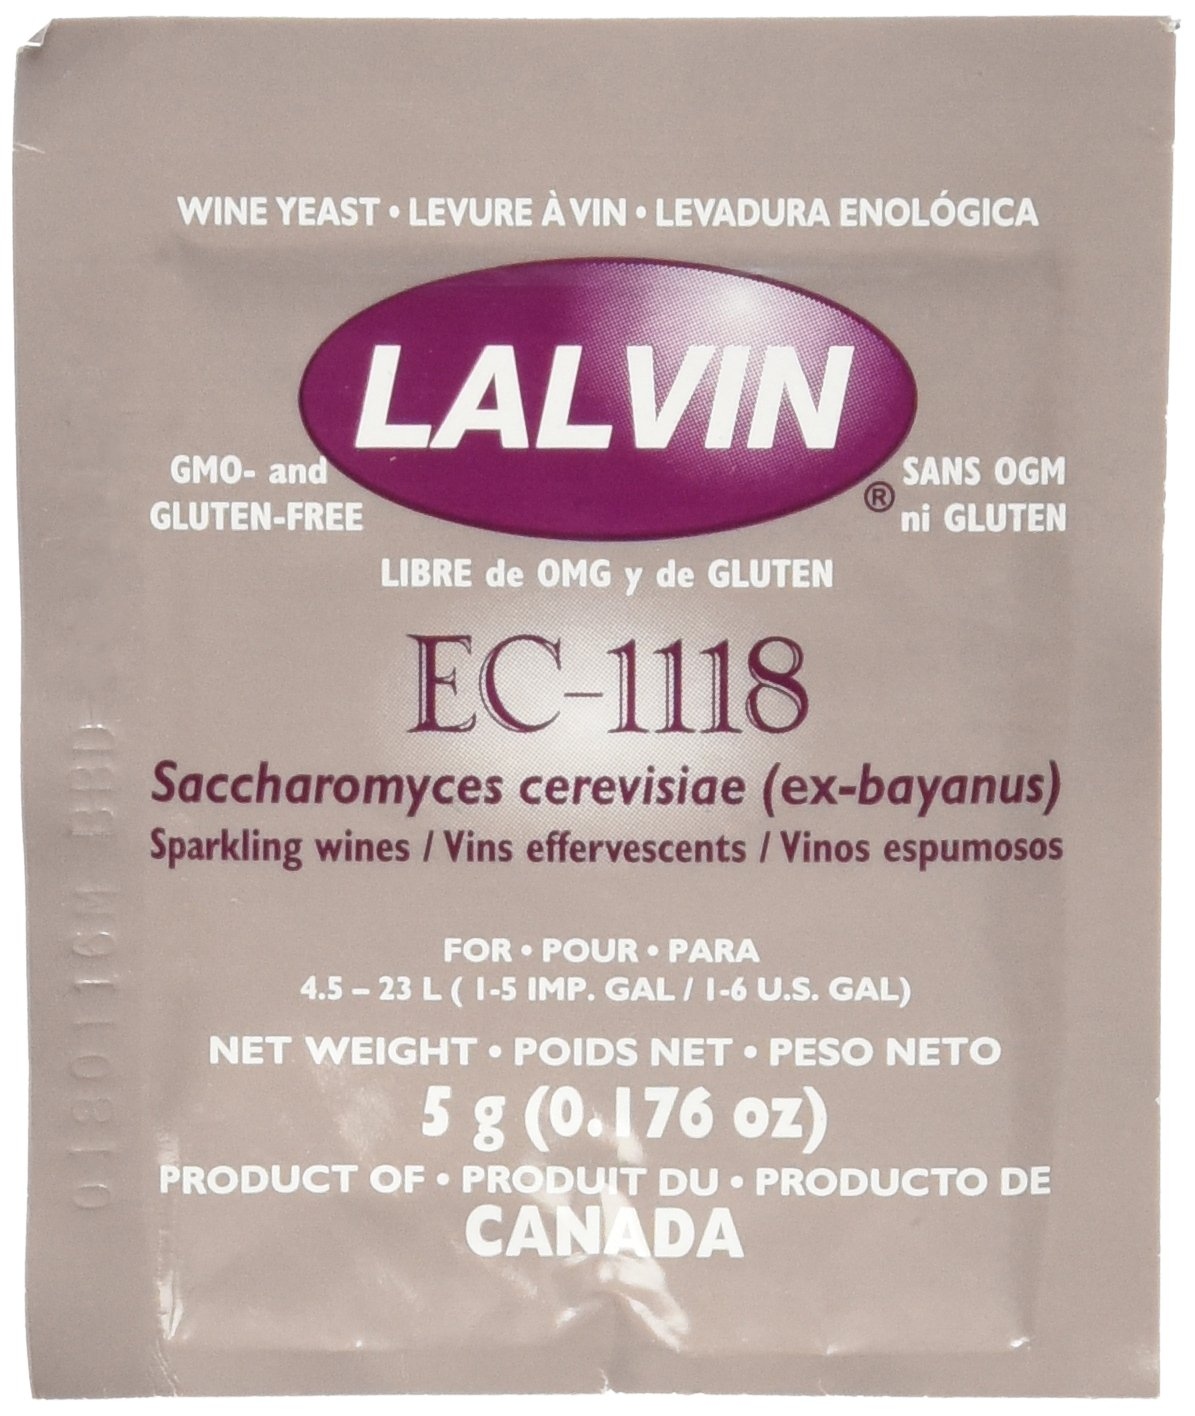 Lalvin Dried Wine Yeast EC #1118 (Pack of 10)